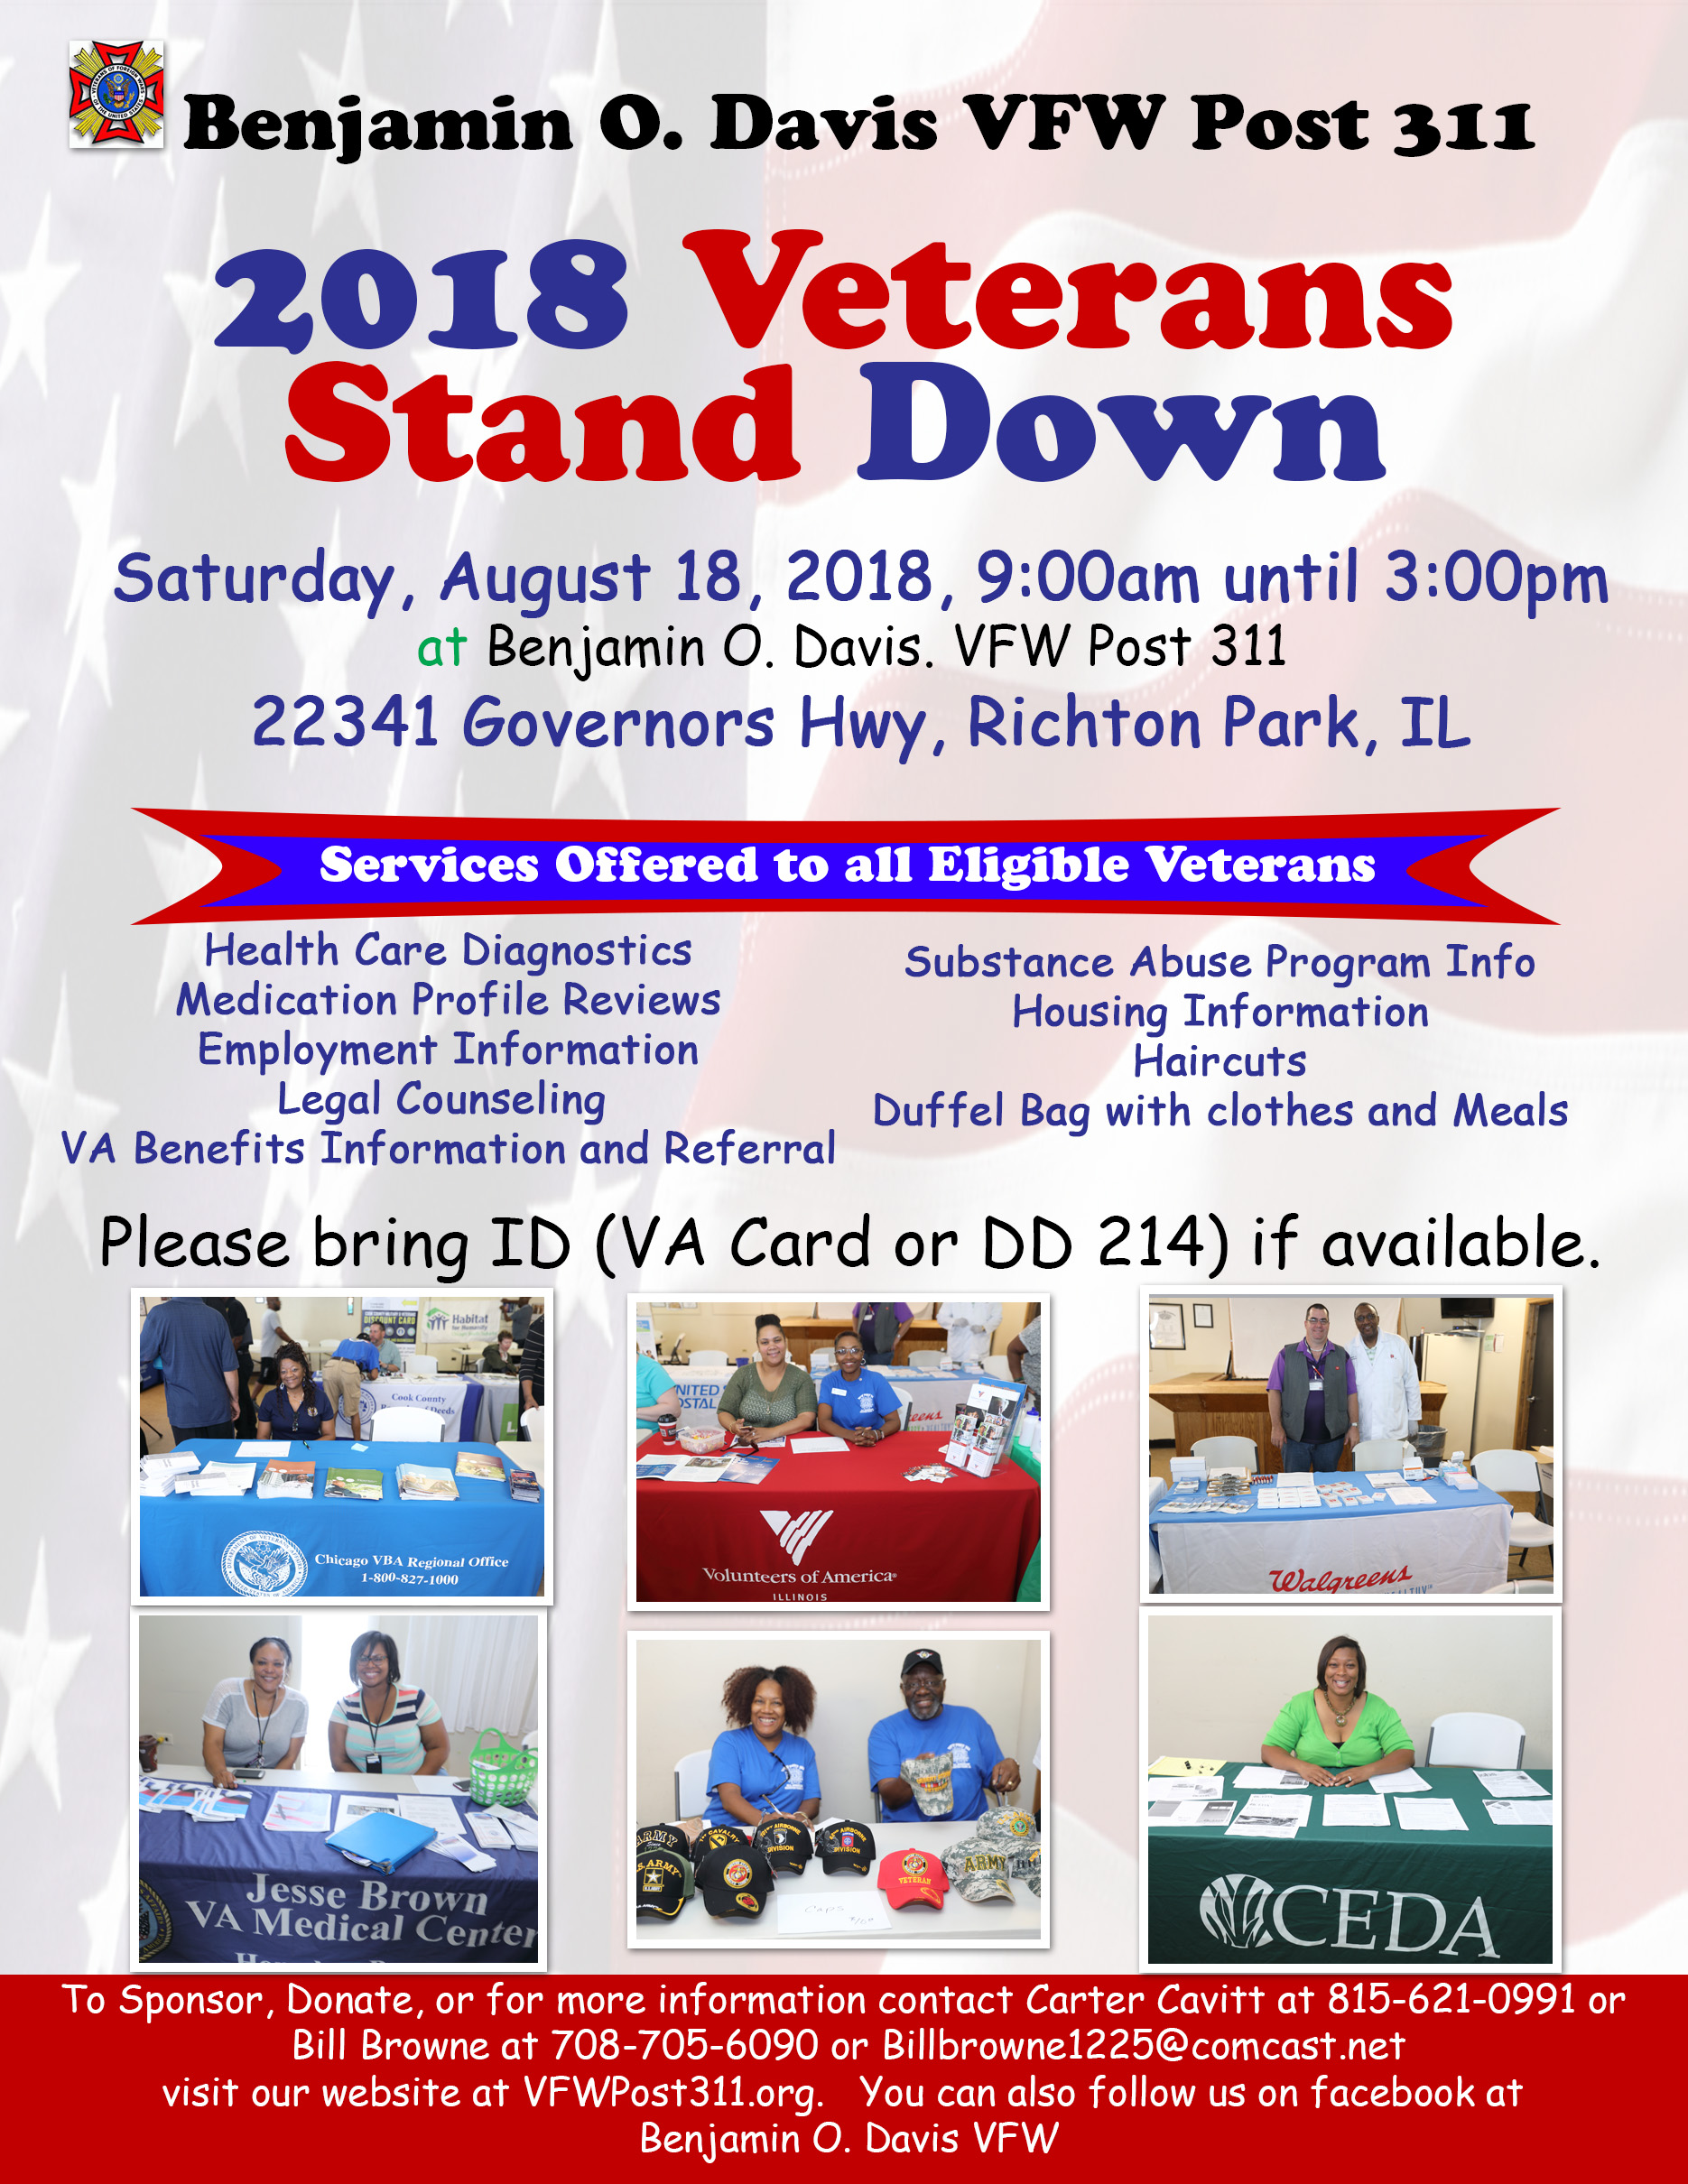 VFW Post 311 Veterans Stand Down 2018 @ VFW Post 311 | Richton Park | Illinois | United States